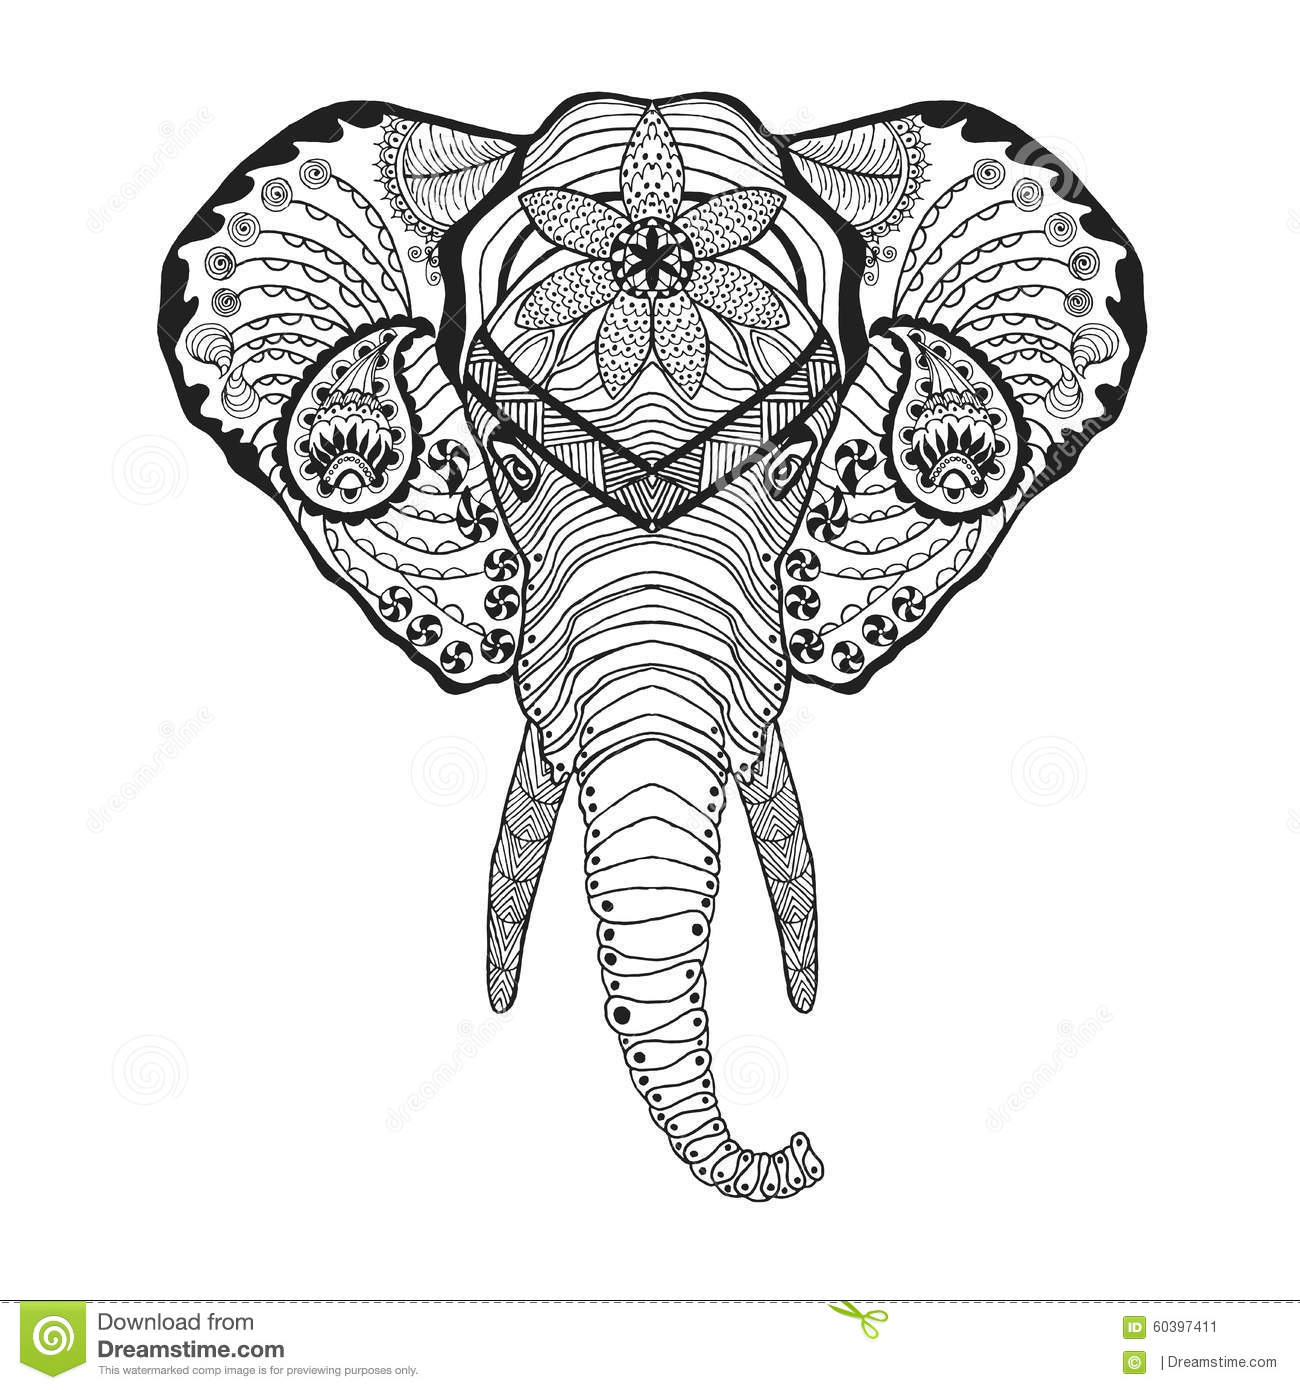 zentangle stylized elphant head sketch for tattoo or t shirt stock